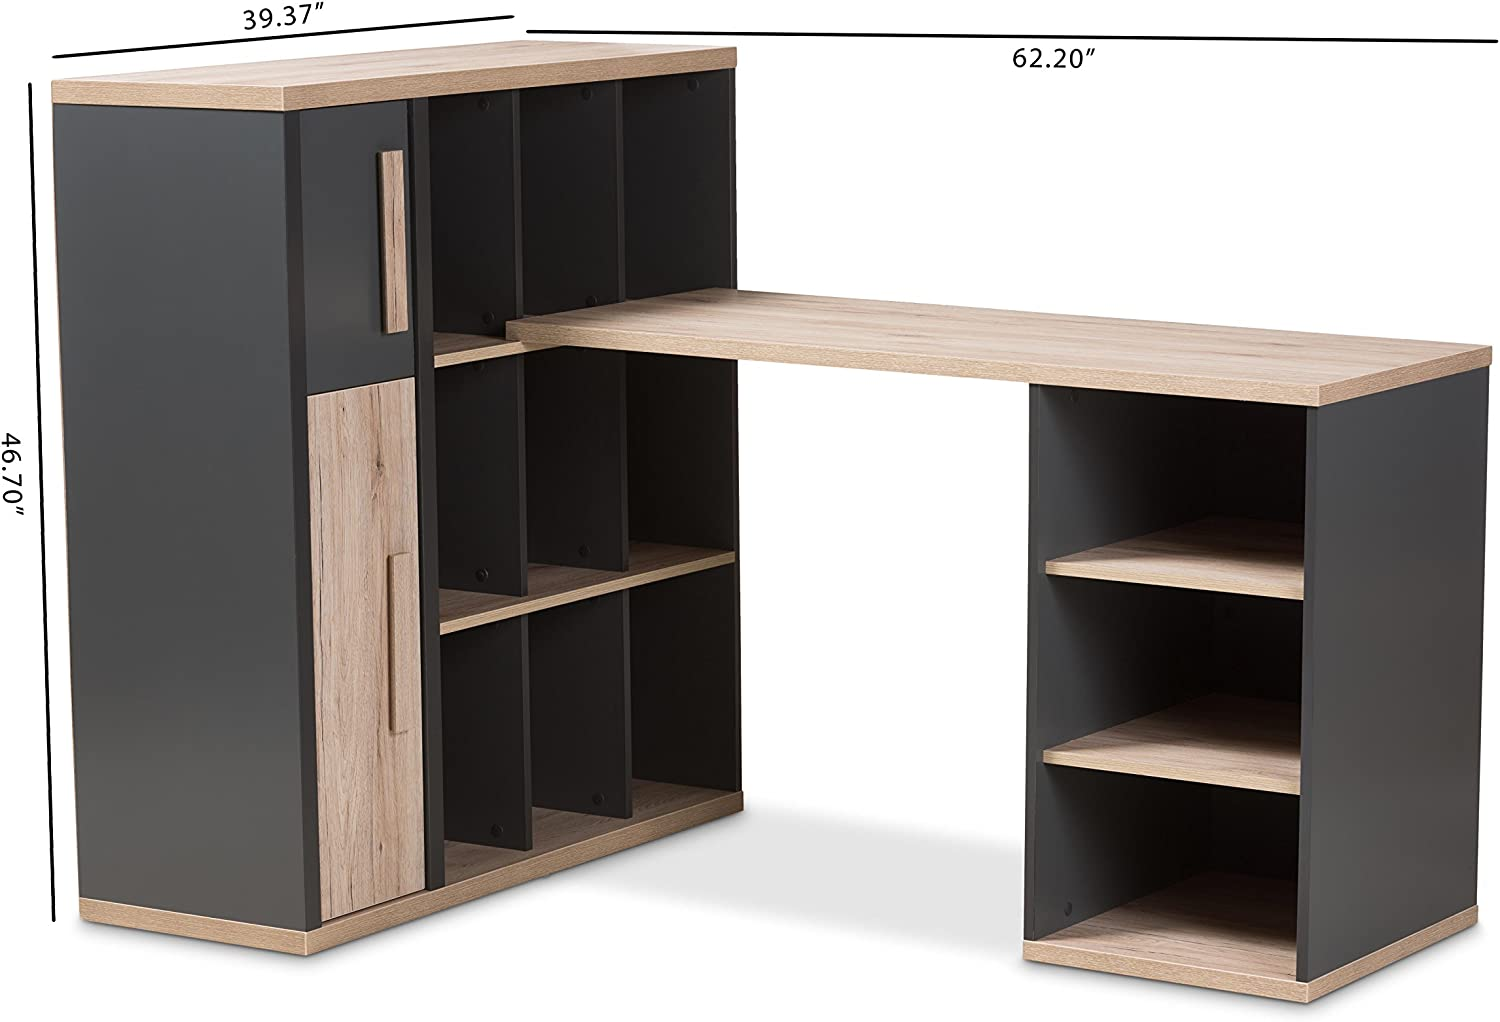 Buy Baxton Studio Panni Modern Study Desk with Built in Shelving ...